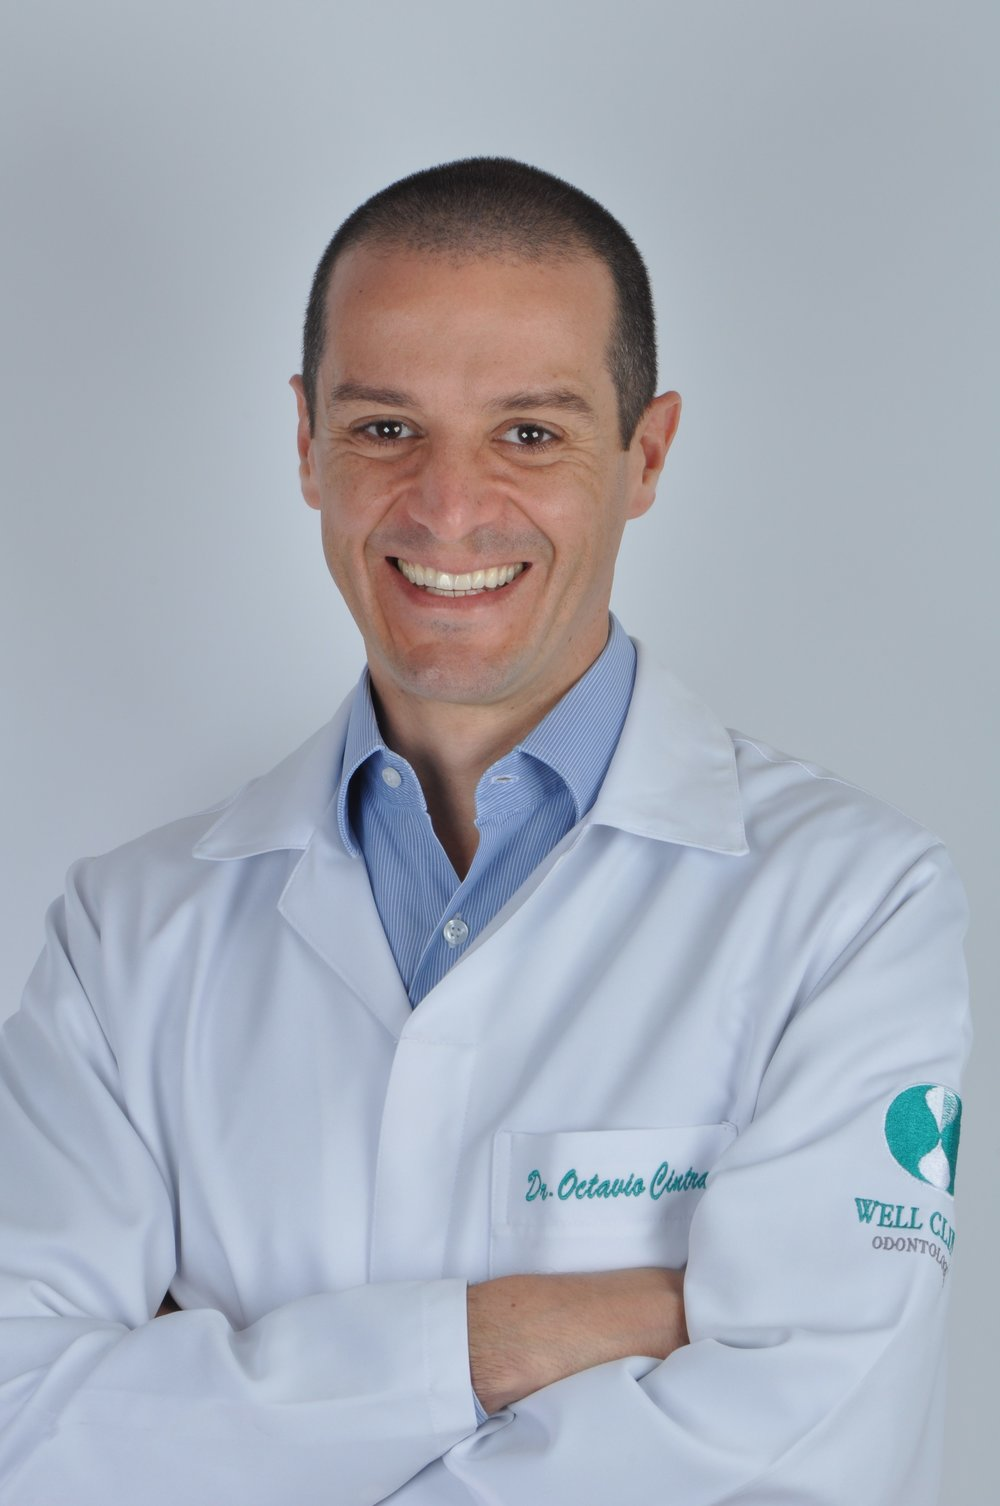 "<b>Octavio Cintra, DDS, DMD</b><br>""When Facial Asymmetry Requires more than Osteotomies."""